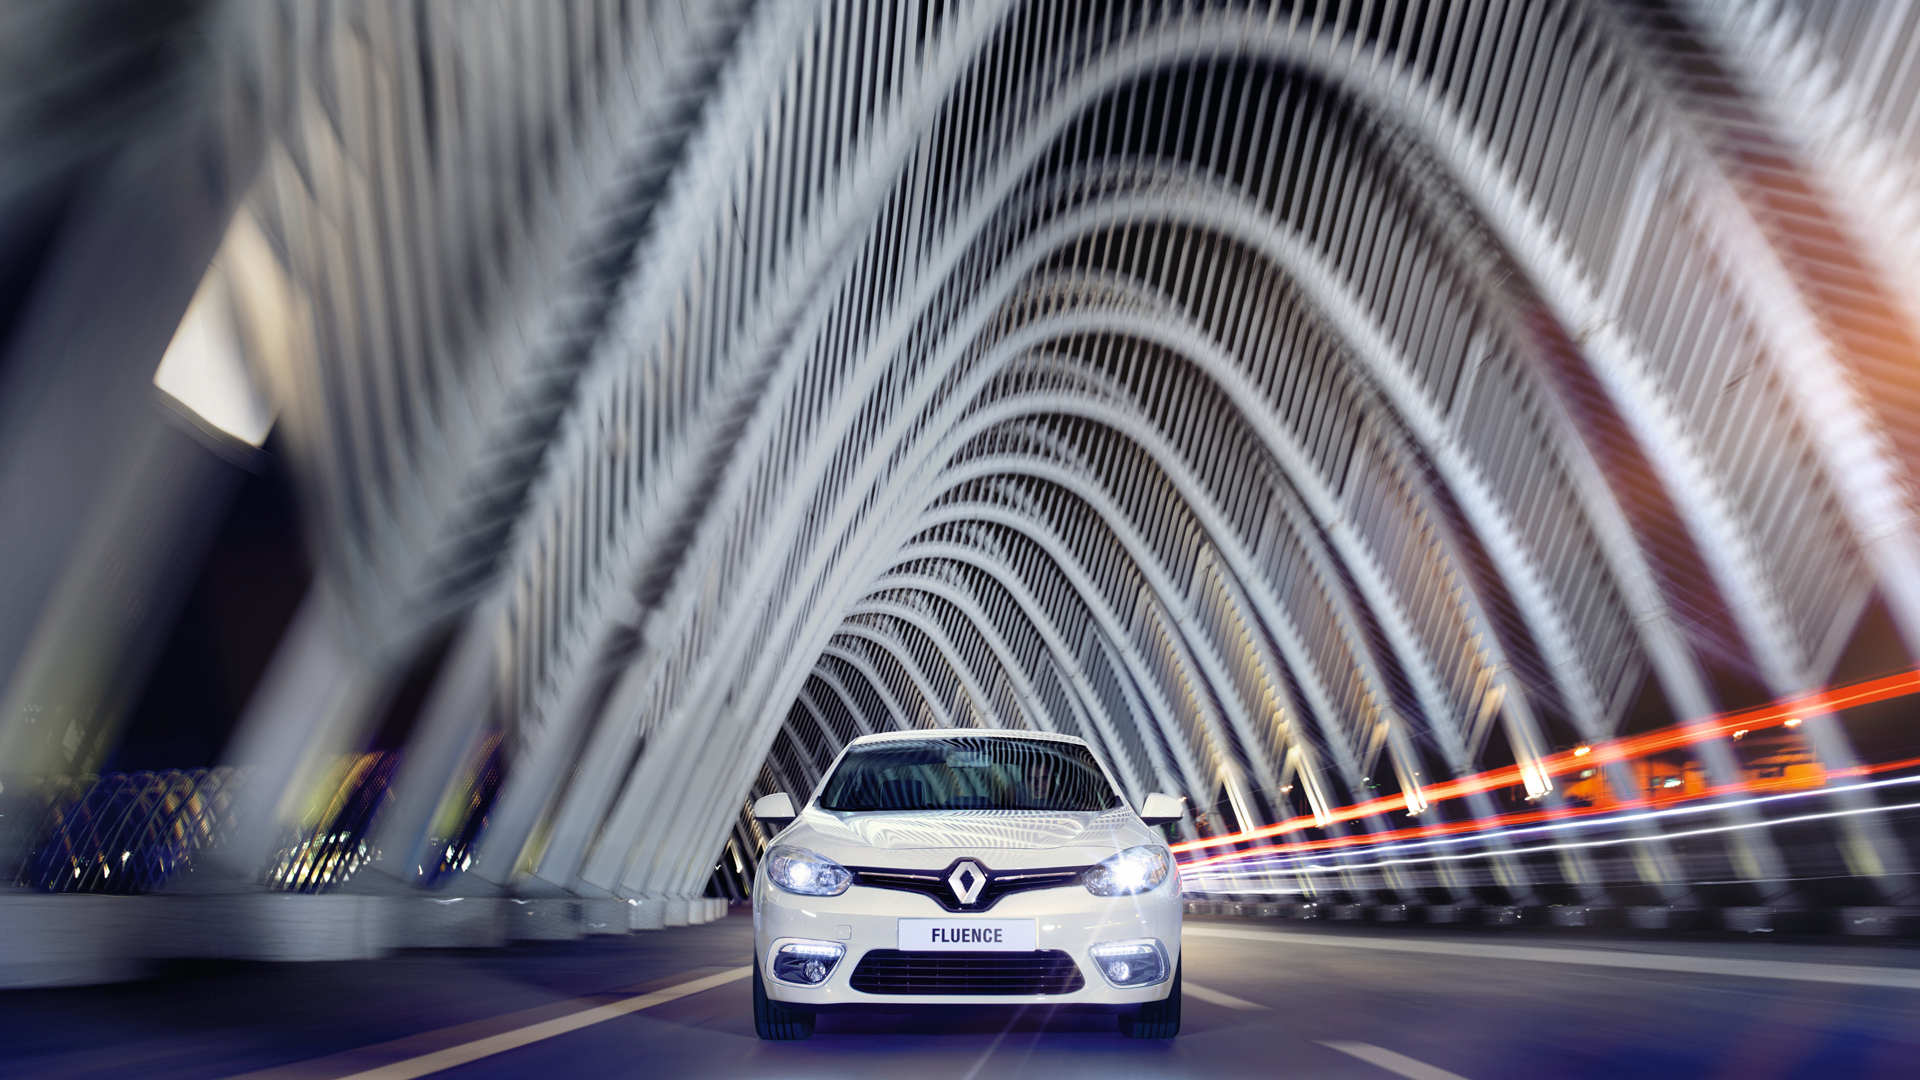 renault wallpaper (Renault Fluence)